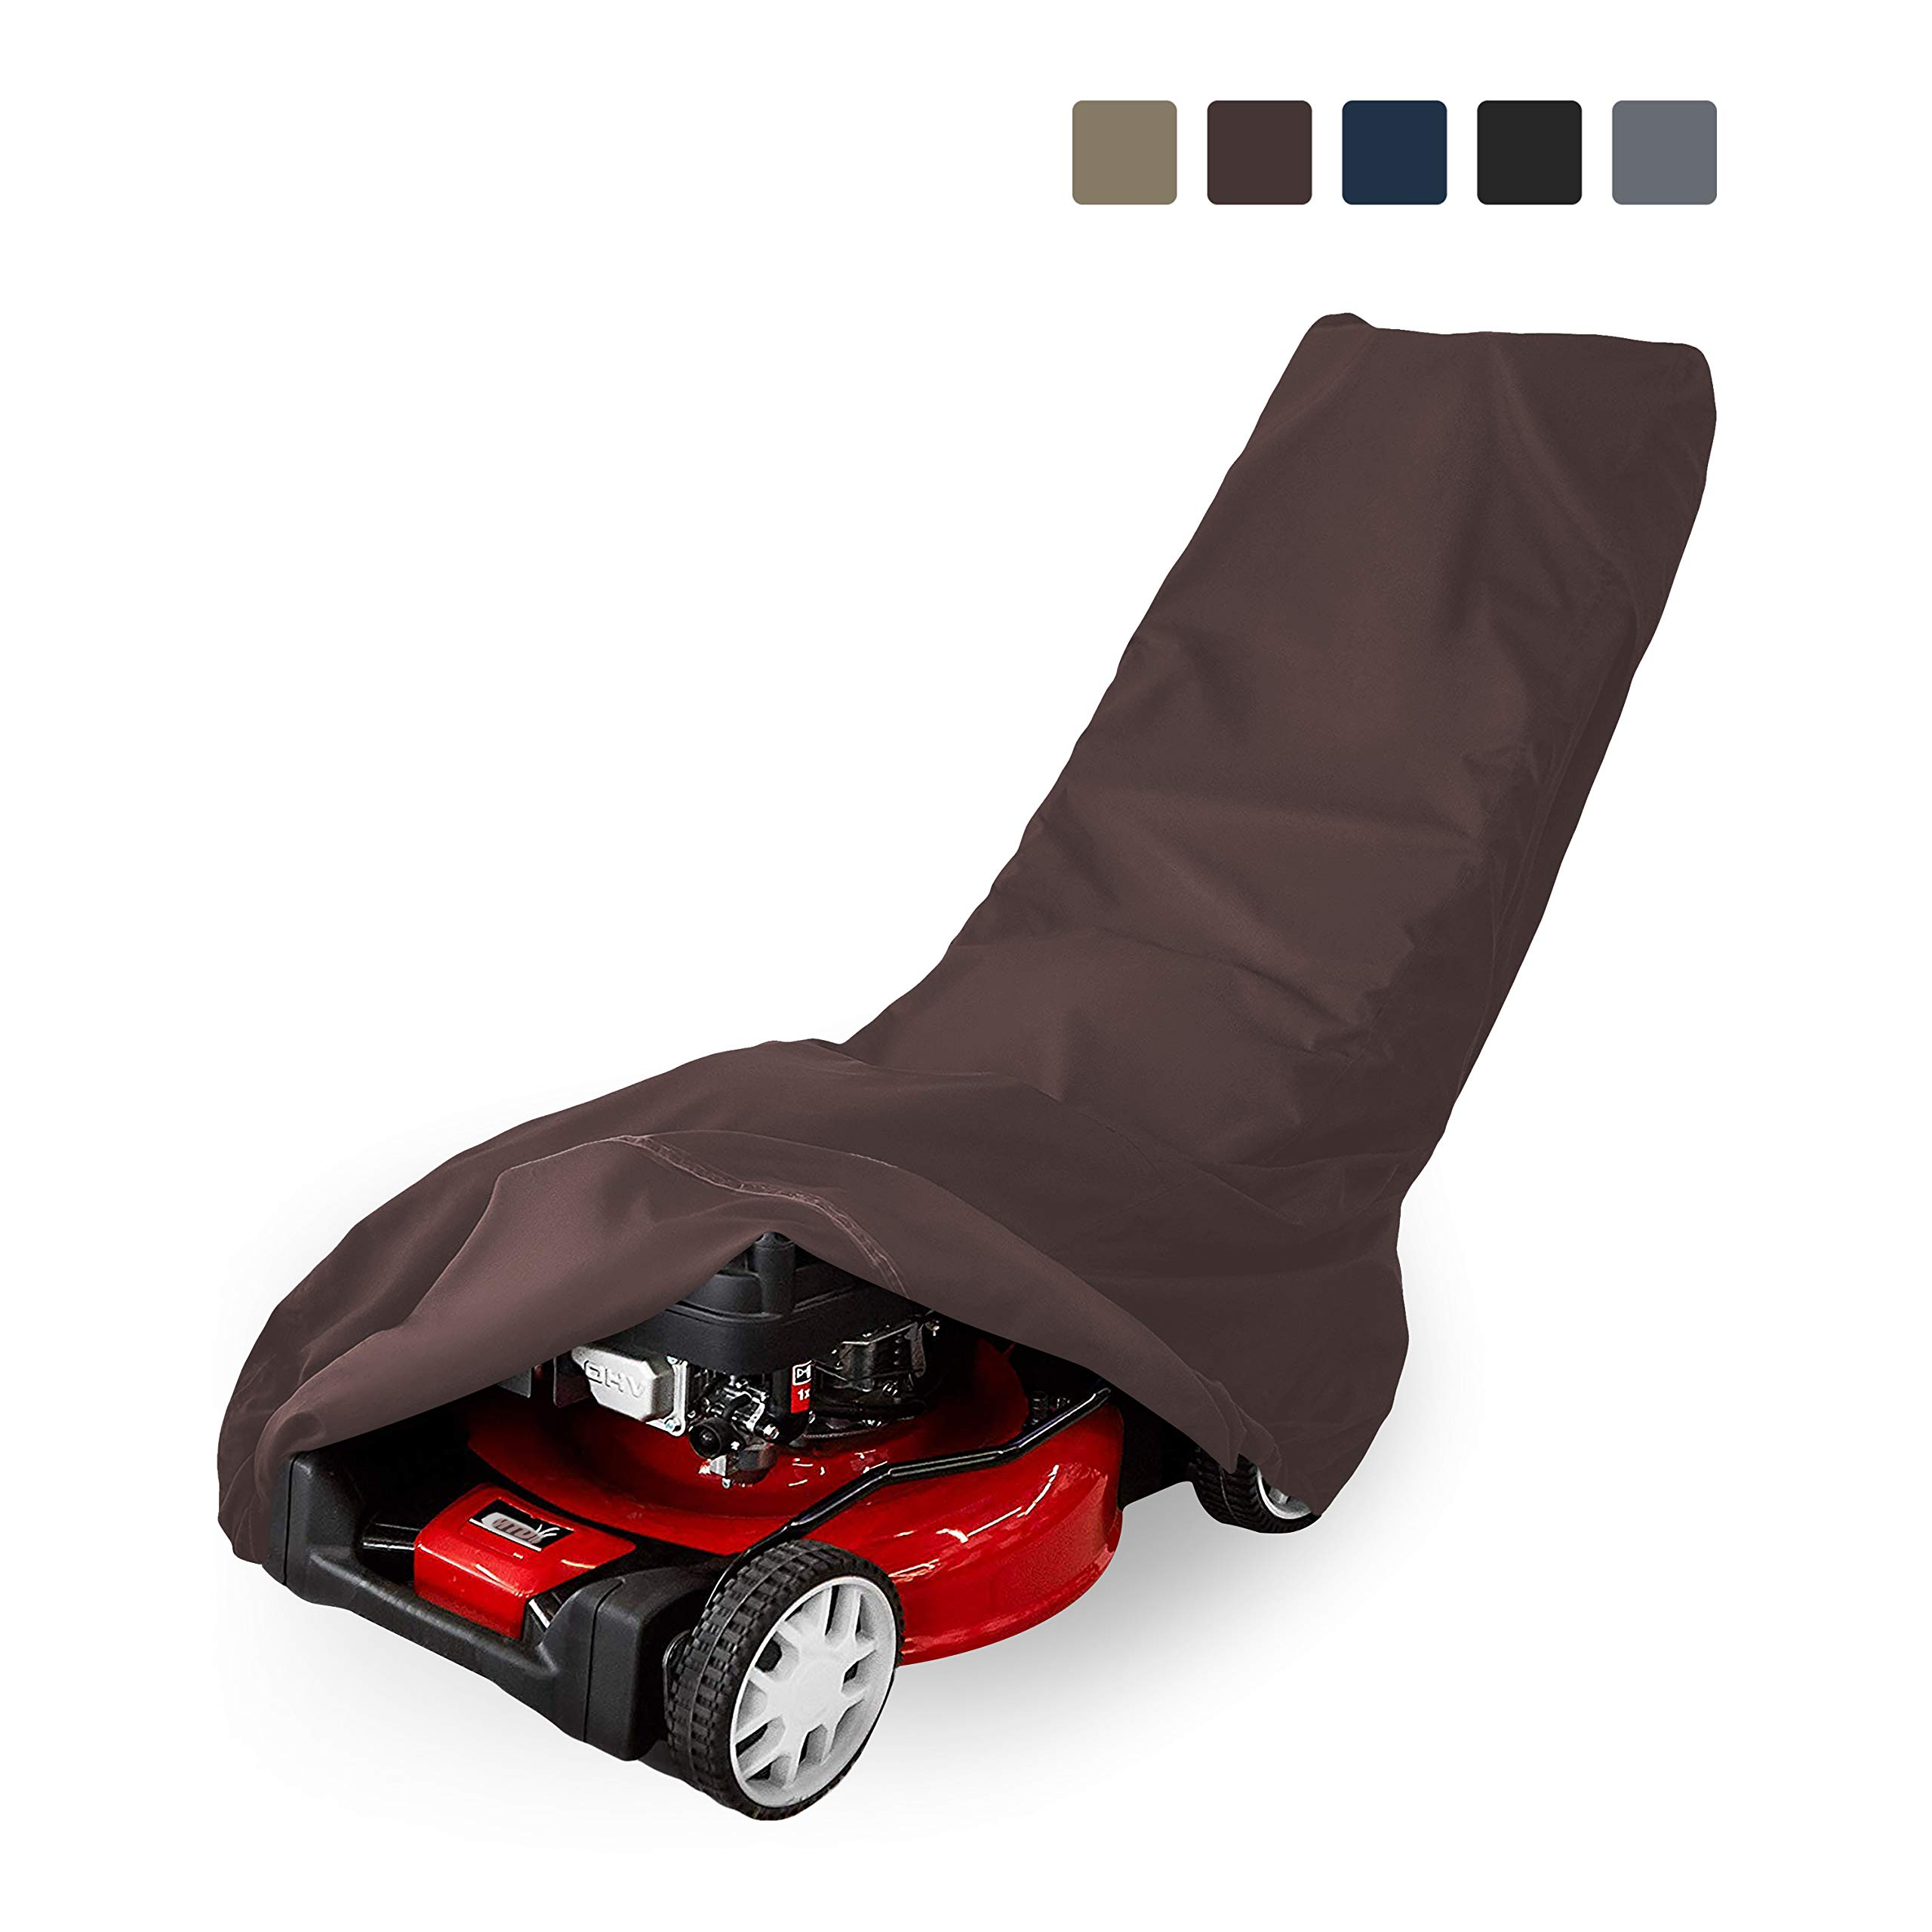 Lawn Mower Cover 12 Oz Waterproof - Customize Cover with Any Size - 100% UV & Weather Resistant Grass Mower Cover with Air Pocket and Drawstring with Snug Fit (50'' W x 25'' D x 44'' H, Coffee)